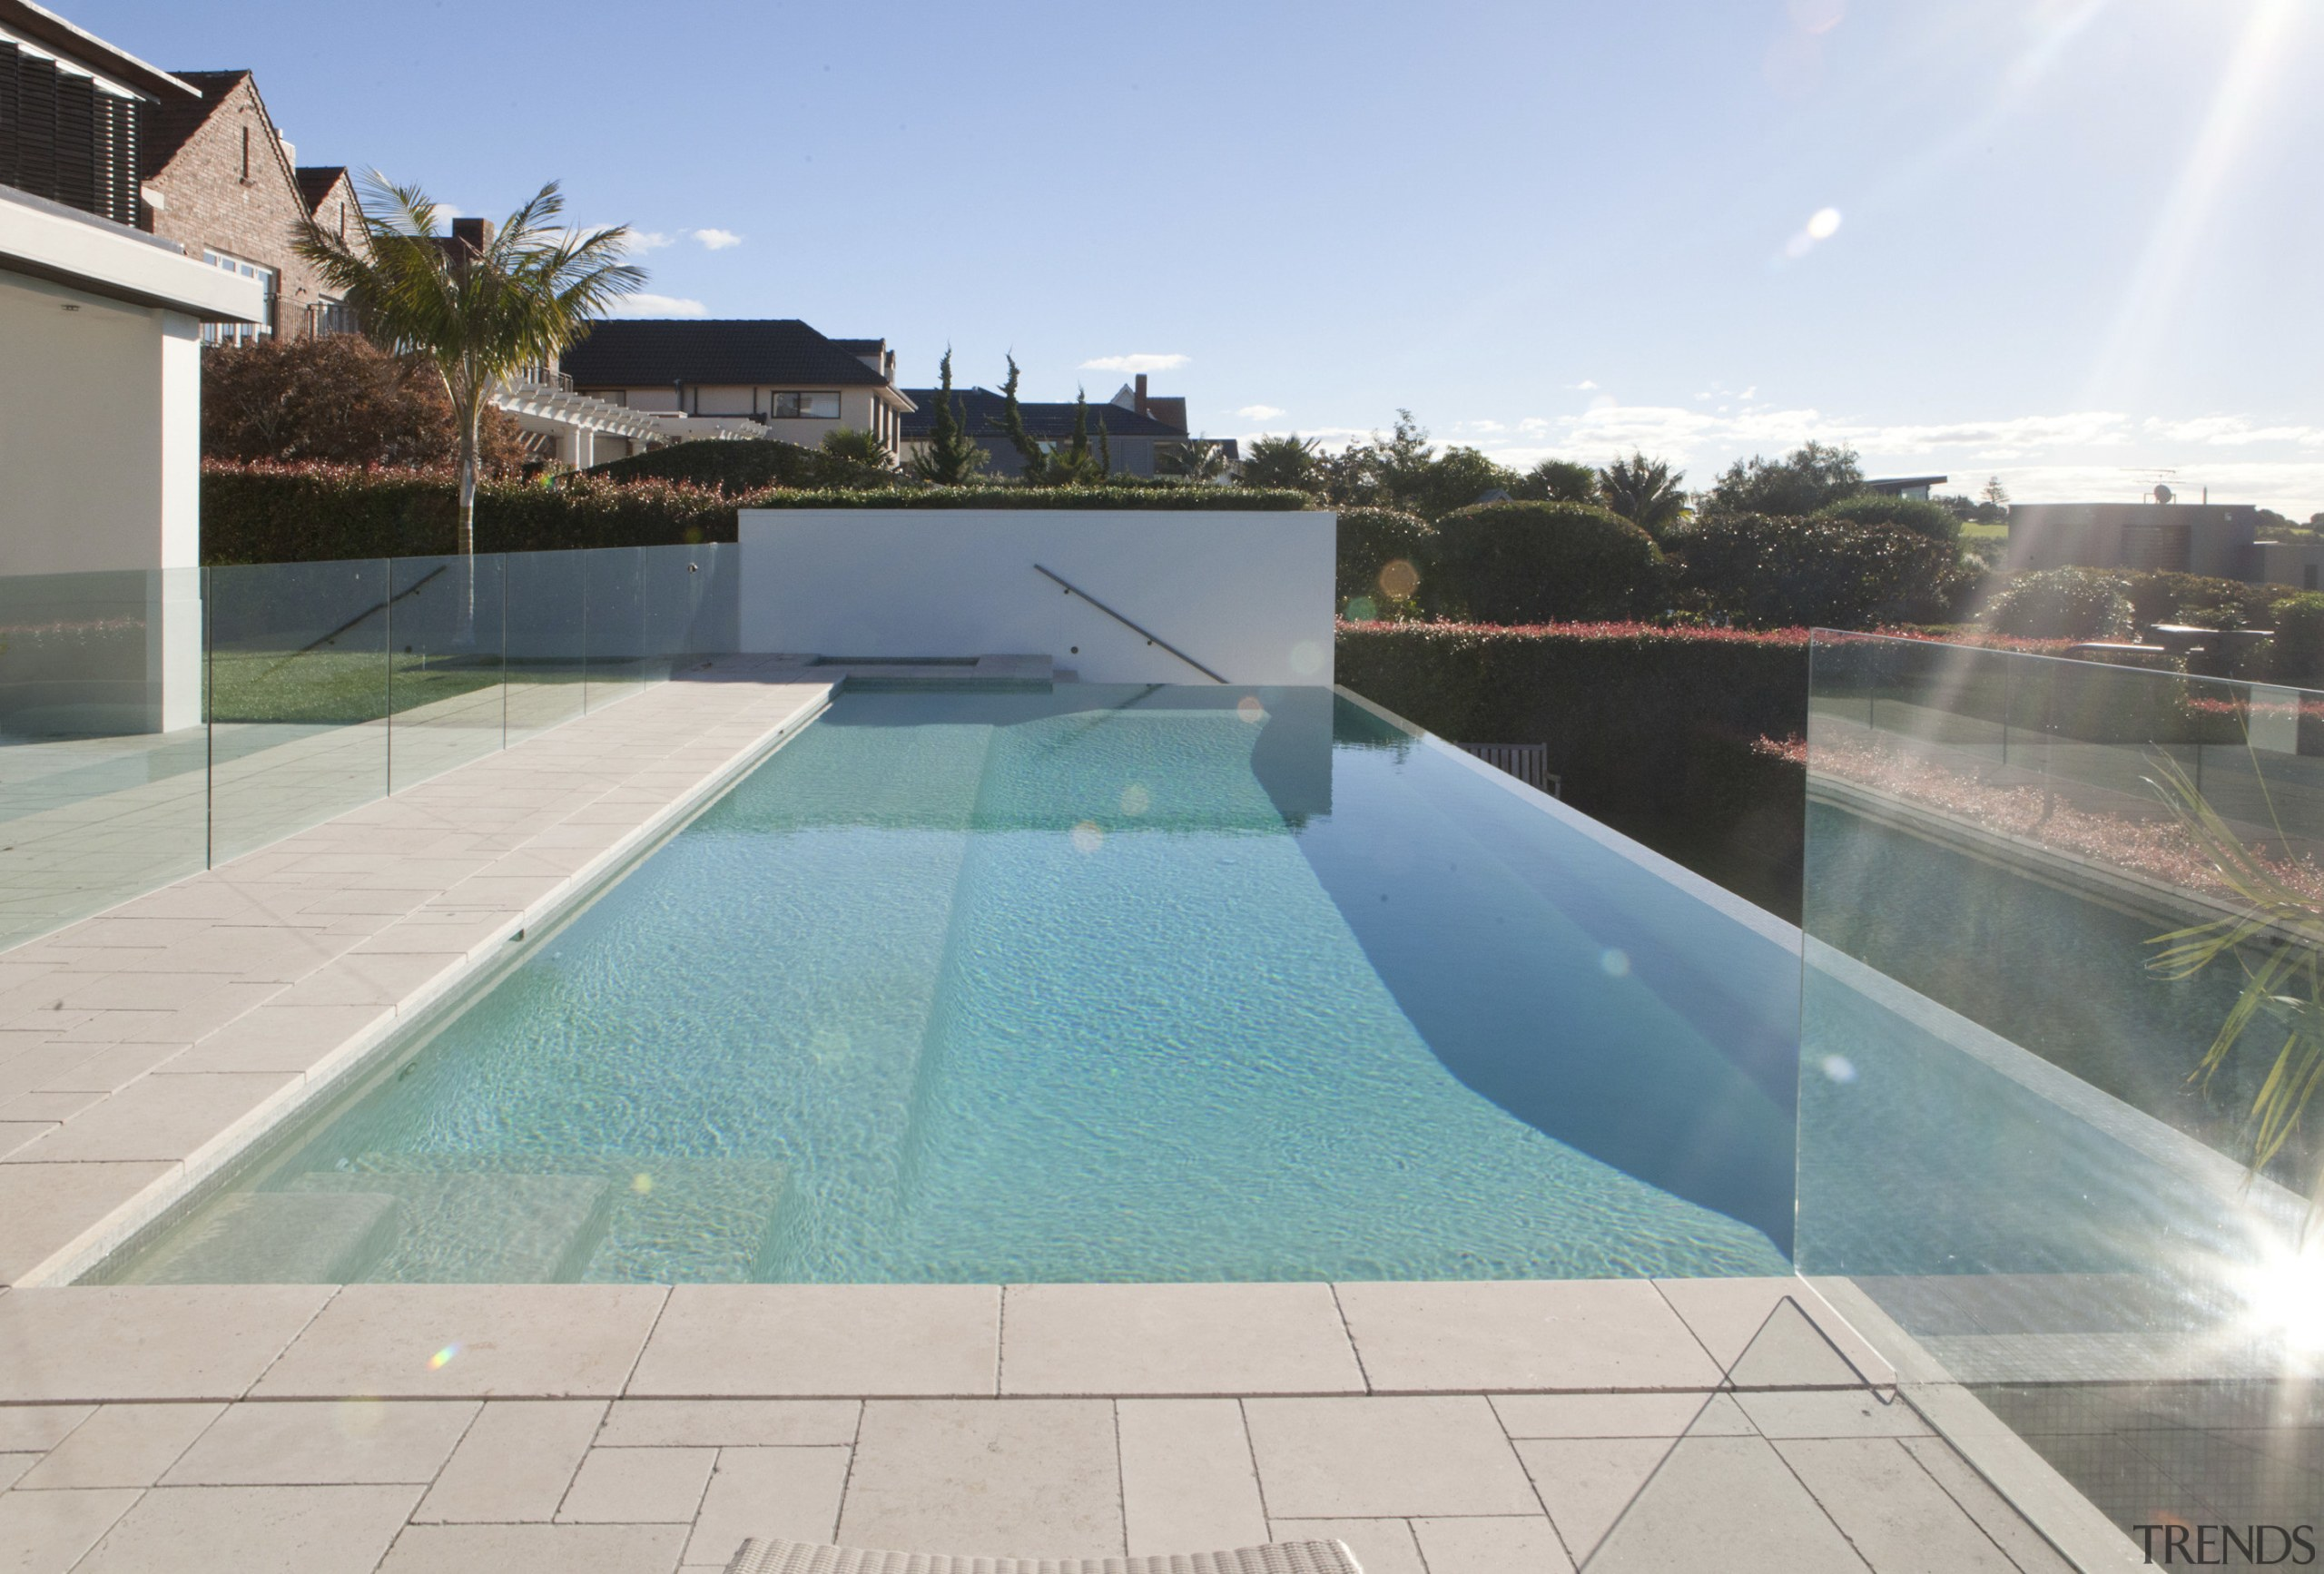 Sunny pool area. - Sunny pool area. - area, estate, leisure, leisure centre, property, real estate, swimming pool, water, gray, teal